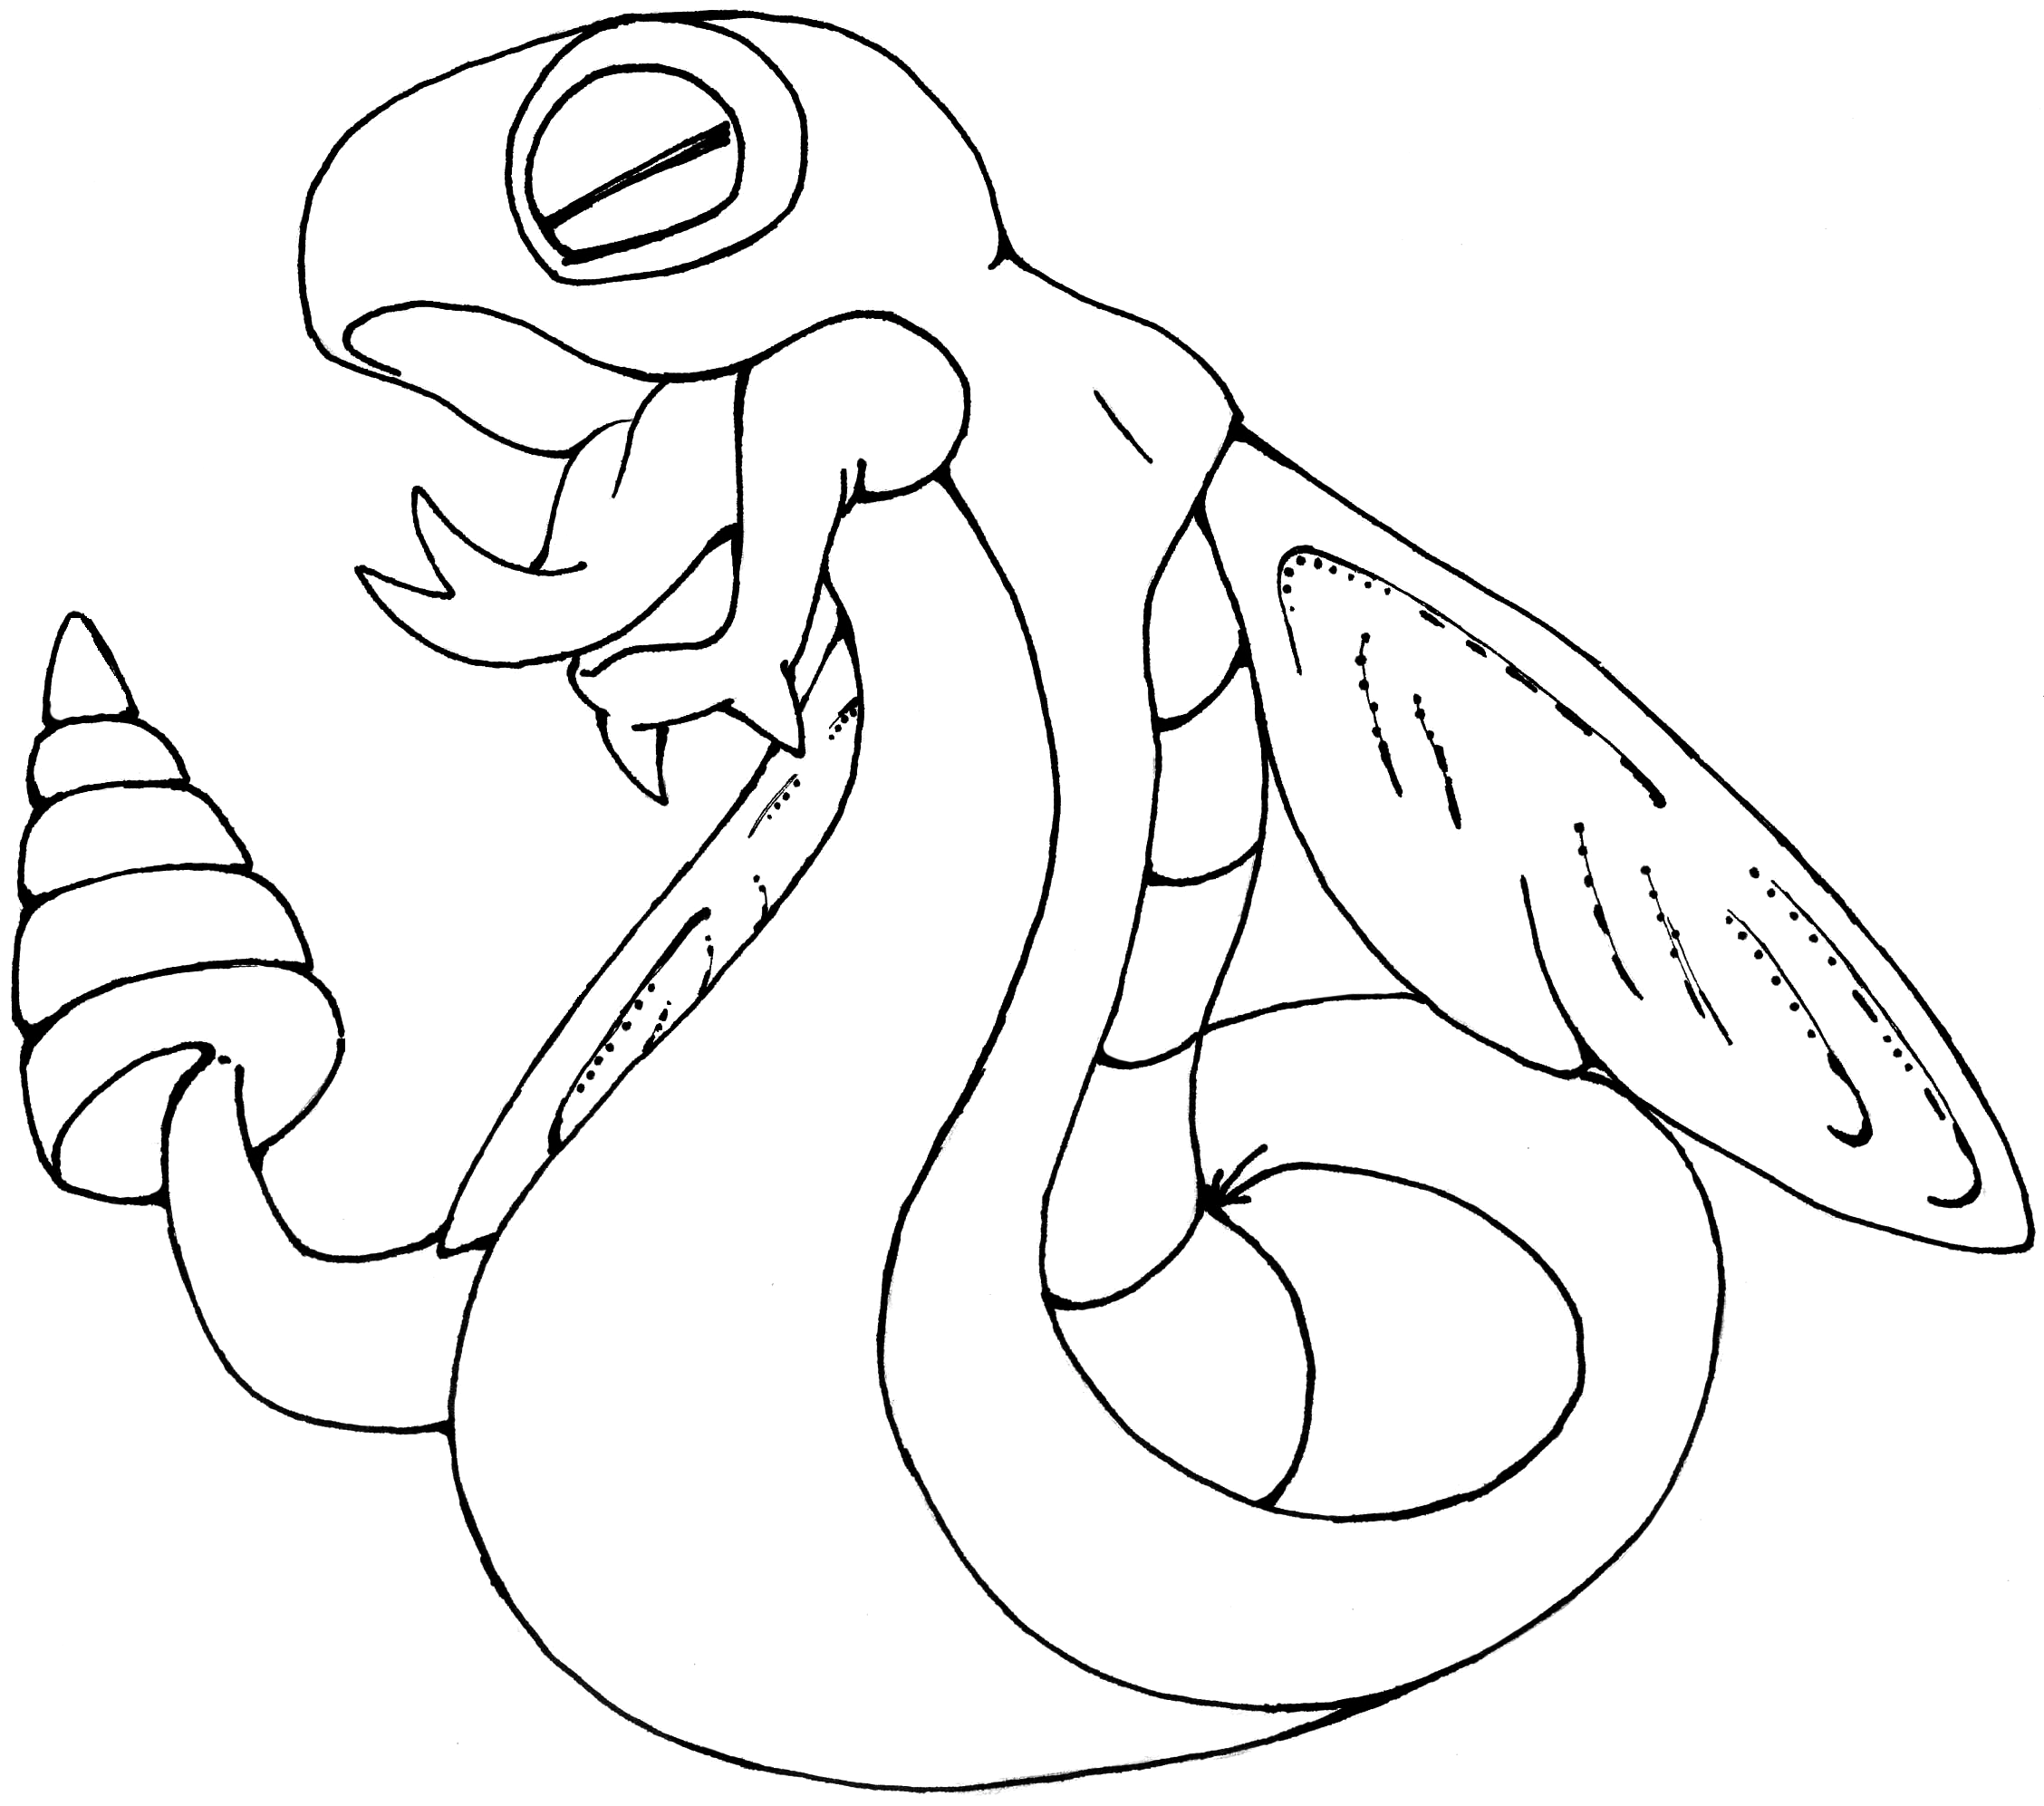 dunsparce pokemon coloring pages - photo#8